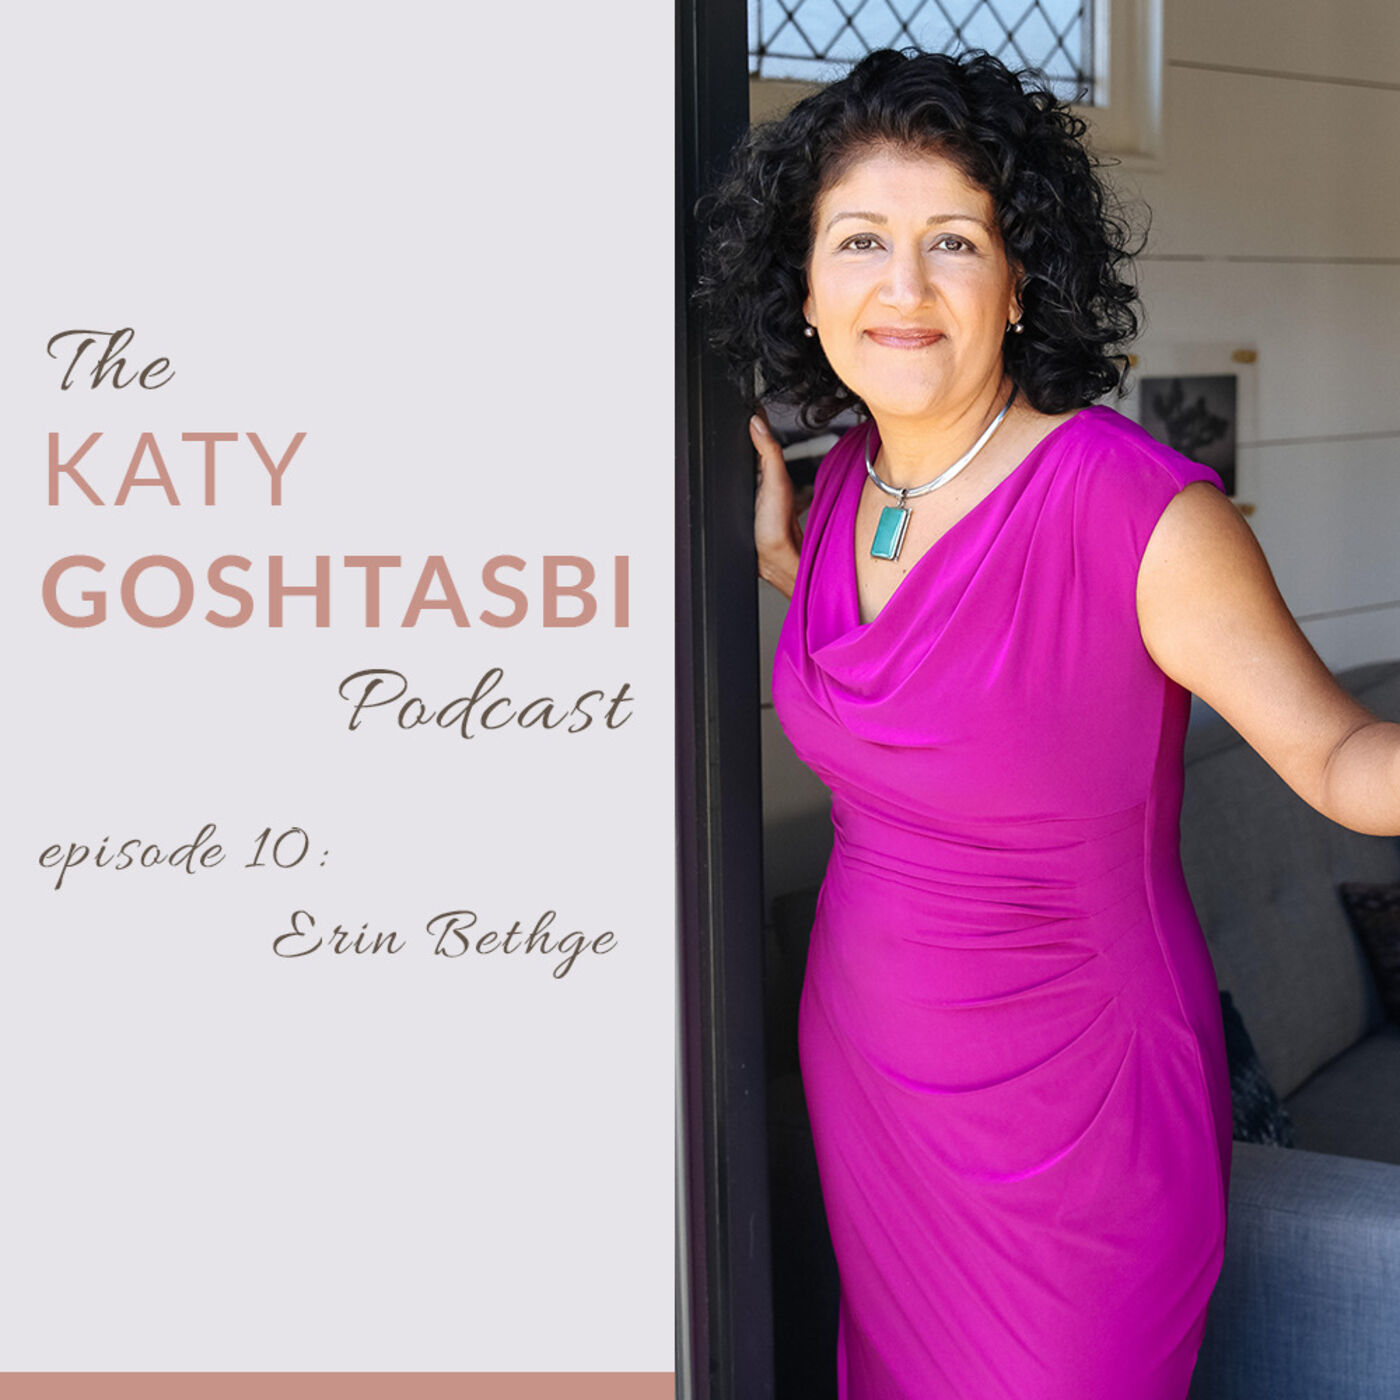 Katy G Podcast Episode #10: Interview with Erin Bethge